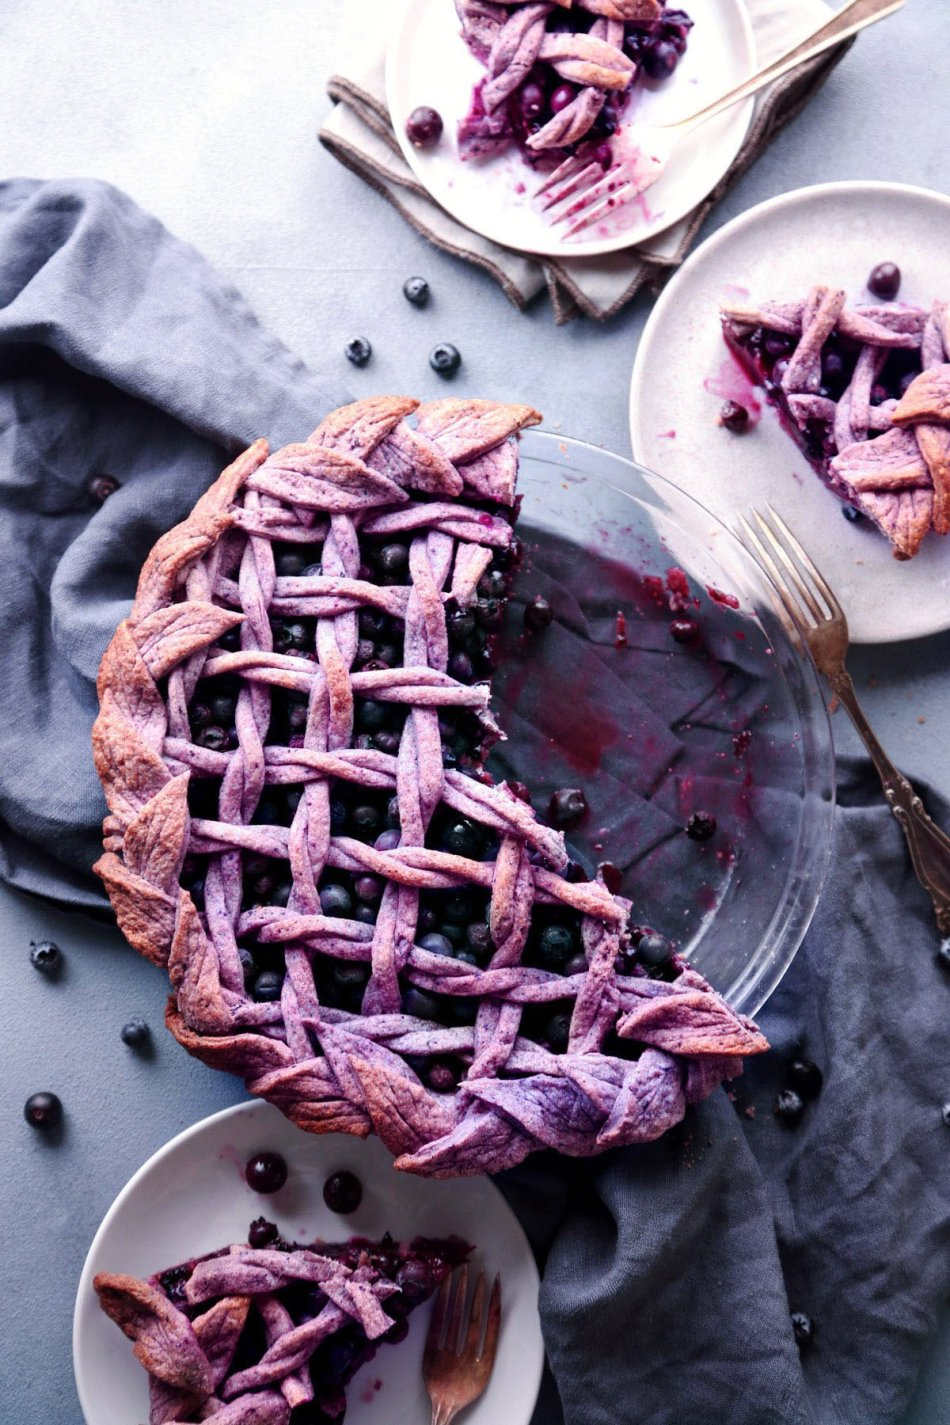 Blueberry Pie with Purple Berry Crust | Vegan friendly and refined sugar free with gluten-free alternative | Wife Mama Foodie